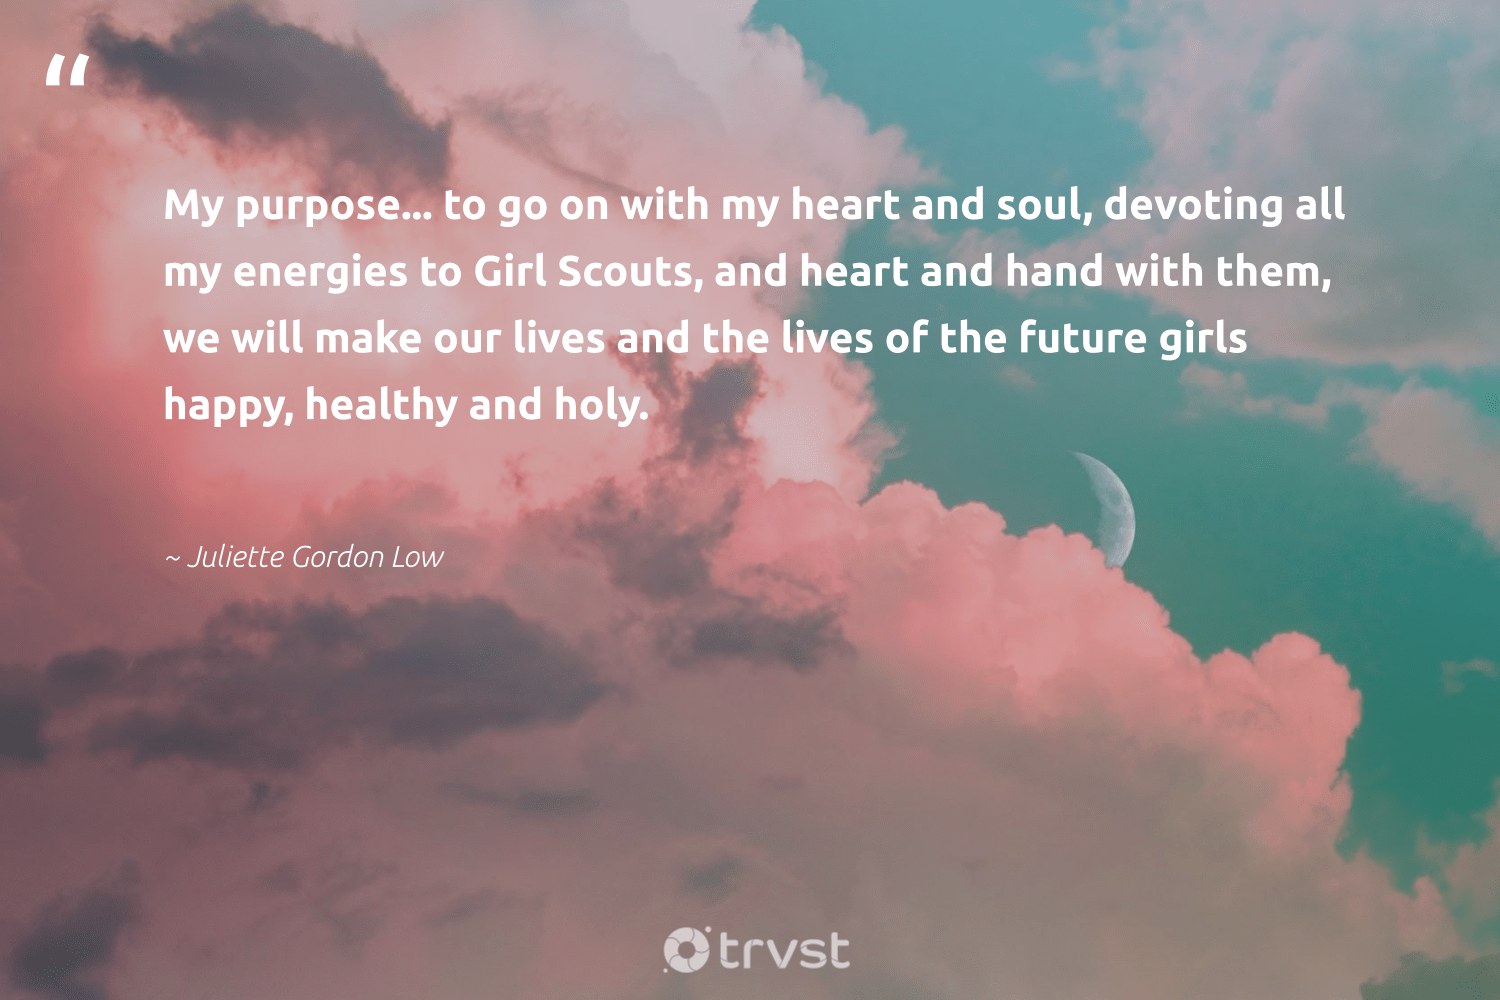 """My purpose... to go on with my heart and soul, devoting all my energies to Girl Scouts, and heart and hand with them, we will make our lives and the lives of the future girls happy, healthy and holy.""  - Juliette Gordon Low #trvst #quotes #wellbeing #happy #healthy #purpose #wellness #health #mindset #dotherightthing #healthylife #begreat"